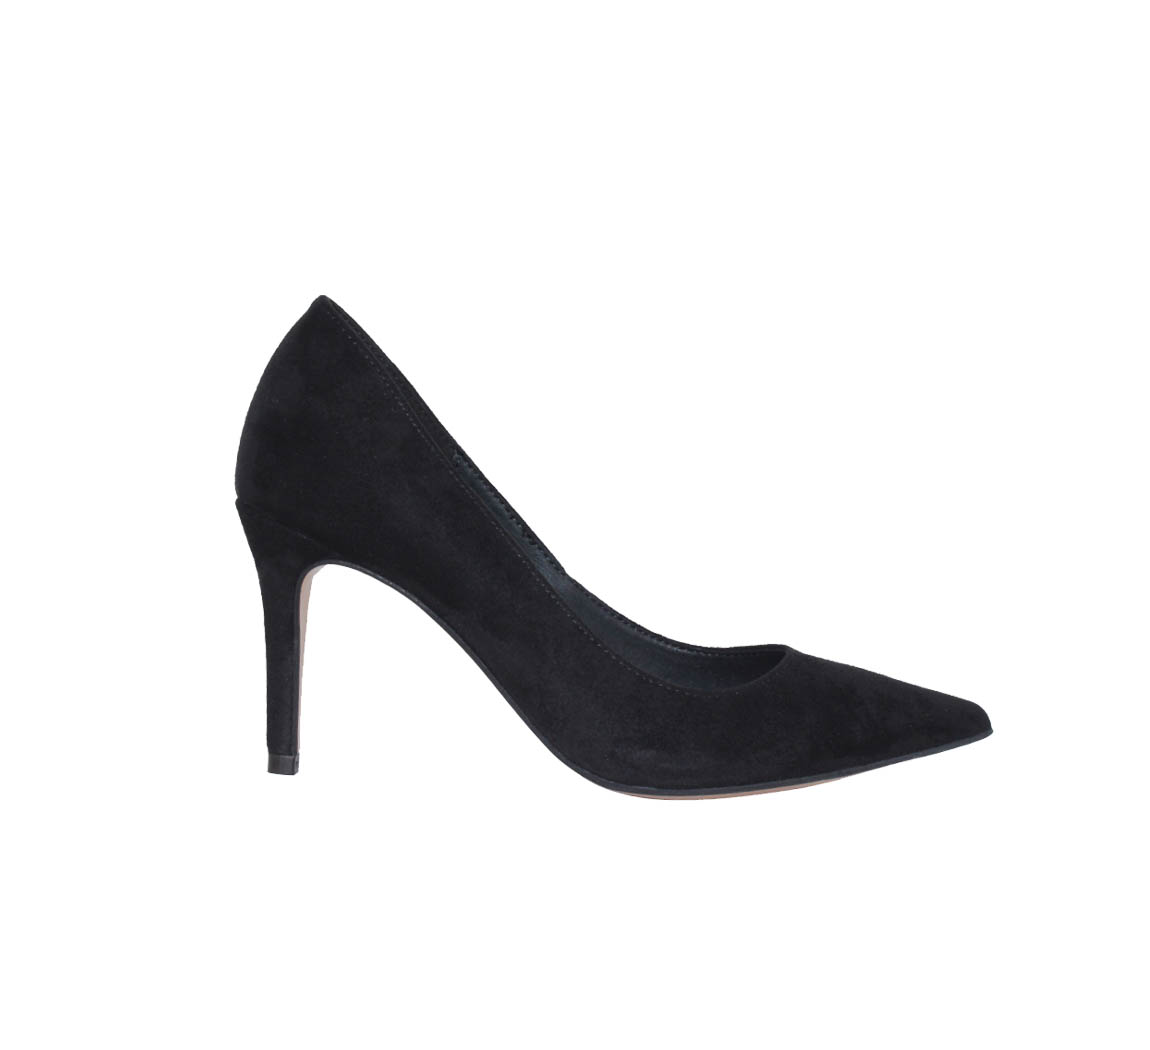 Escarpin vegan noir Pointed Toes Pump